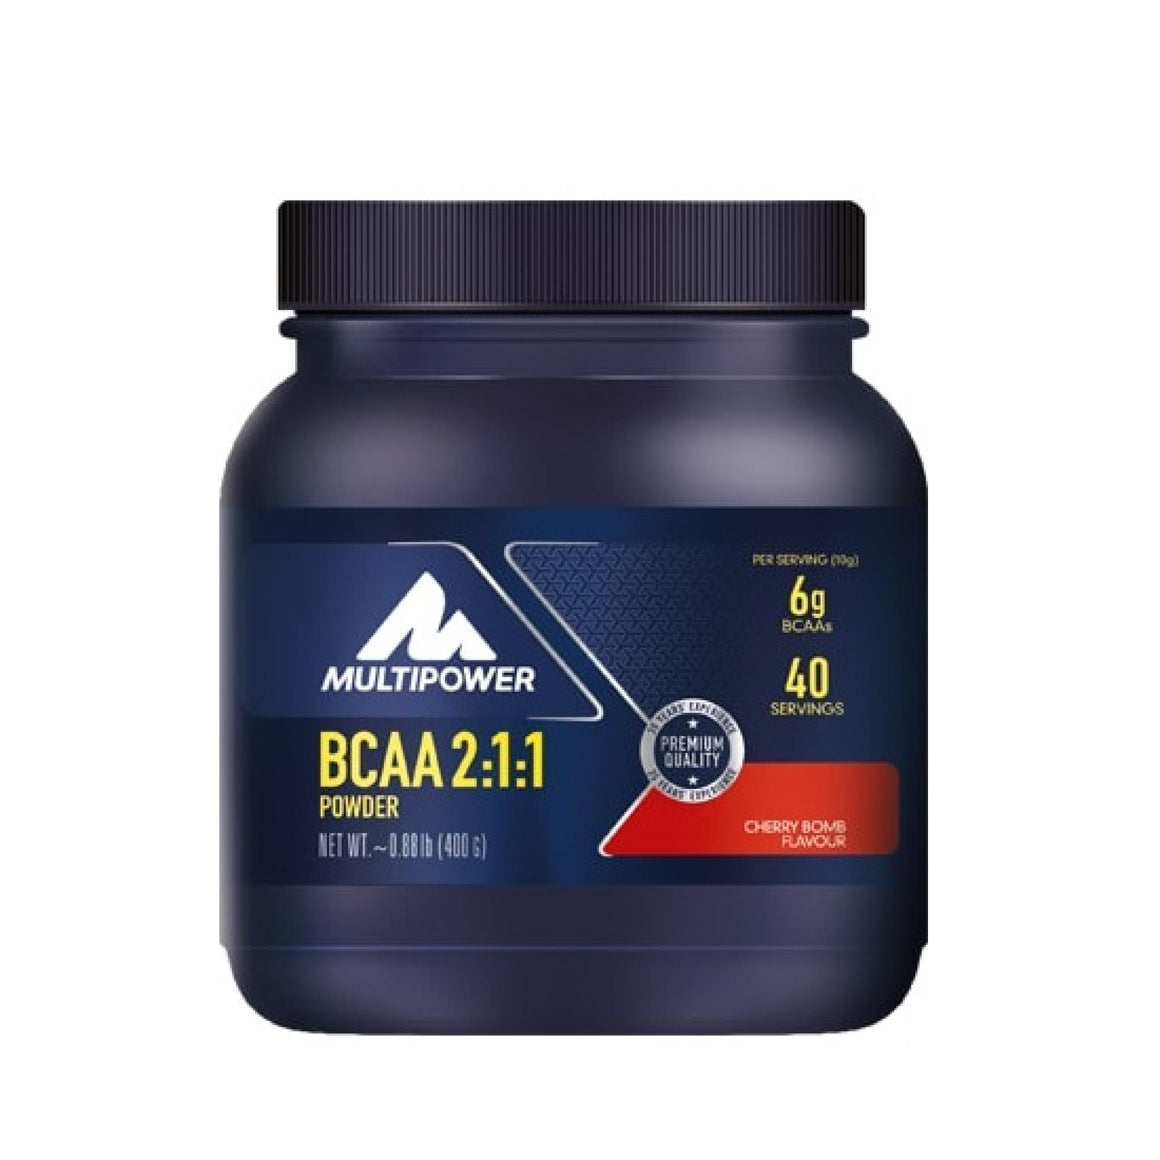 BCAA 2:1:1 Multipower